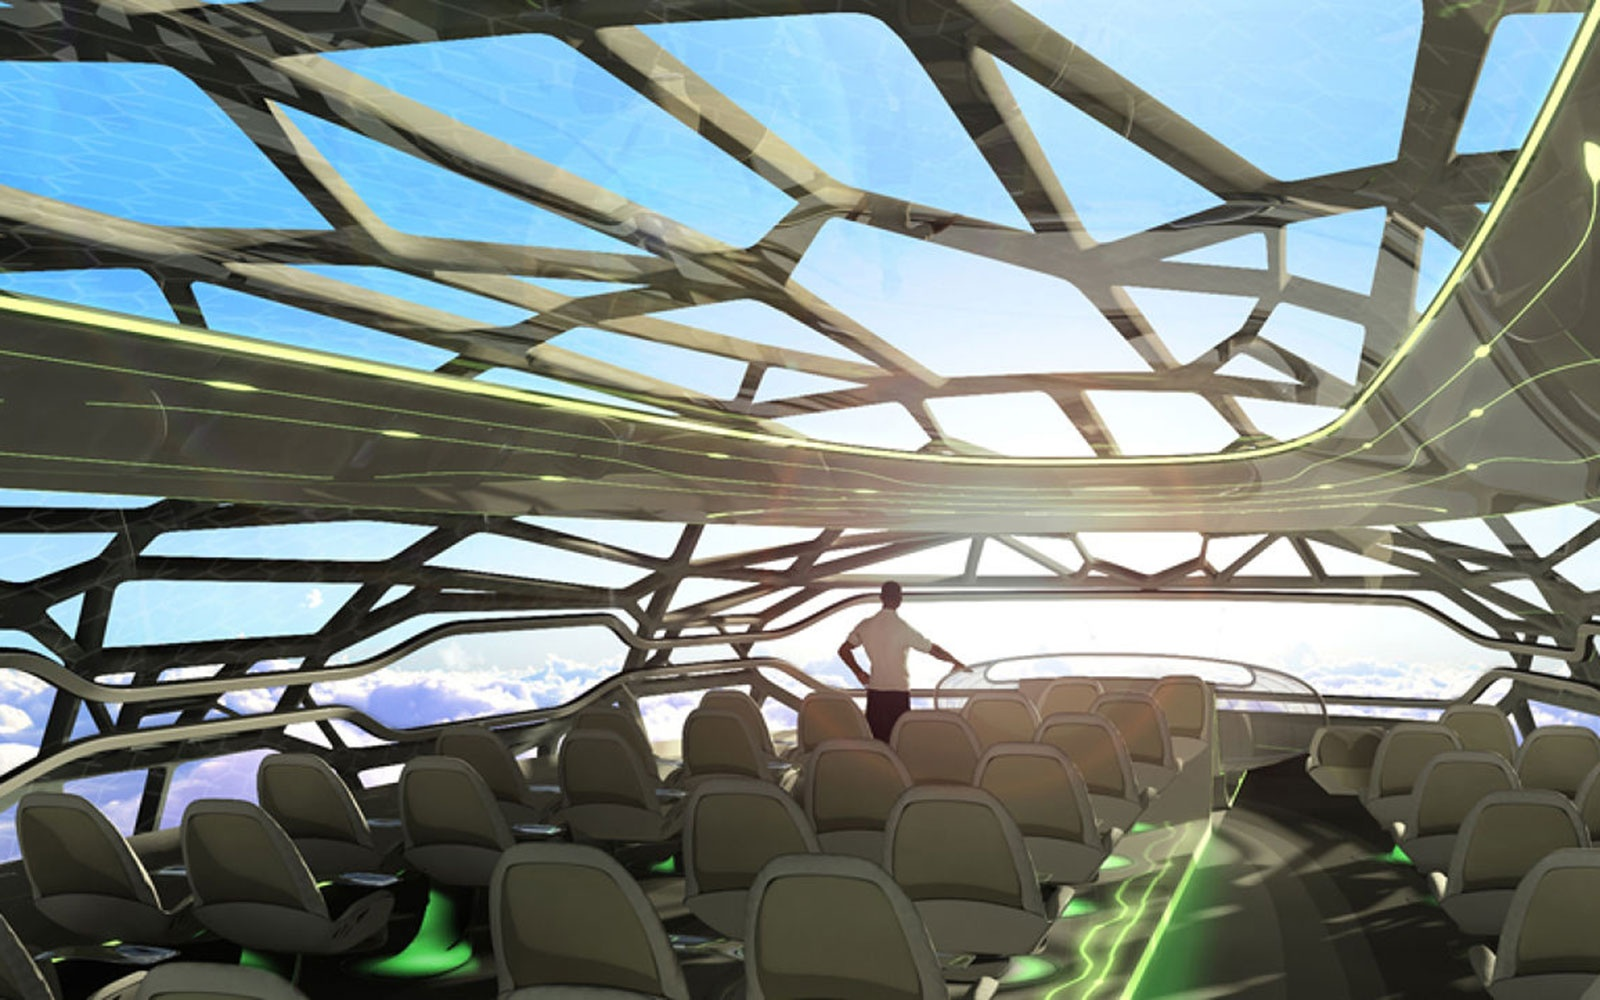 201412-w-innovative-airplane-seat-designs-airbus-concept-plane